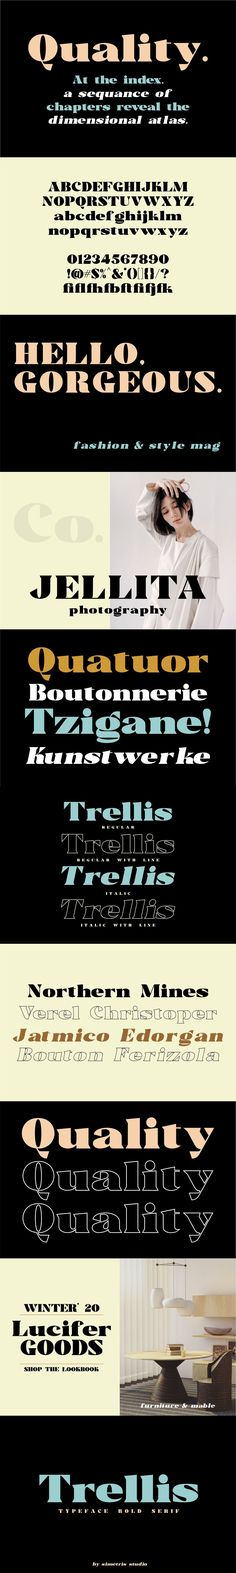 Trellis//Typeface Bold Serif is a wedge serif font that is sure to stand out! A little bit retro and a bit modern, Trellisis great for logos, editorial or web design. Best Serif Fonts, Otf Font, Web Design, Graphic Design, Uppercase And Lowercase, Punctuation, Trellis, Editorial, Retro